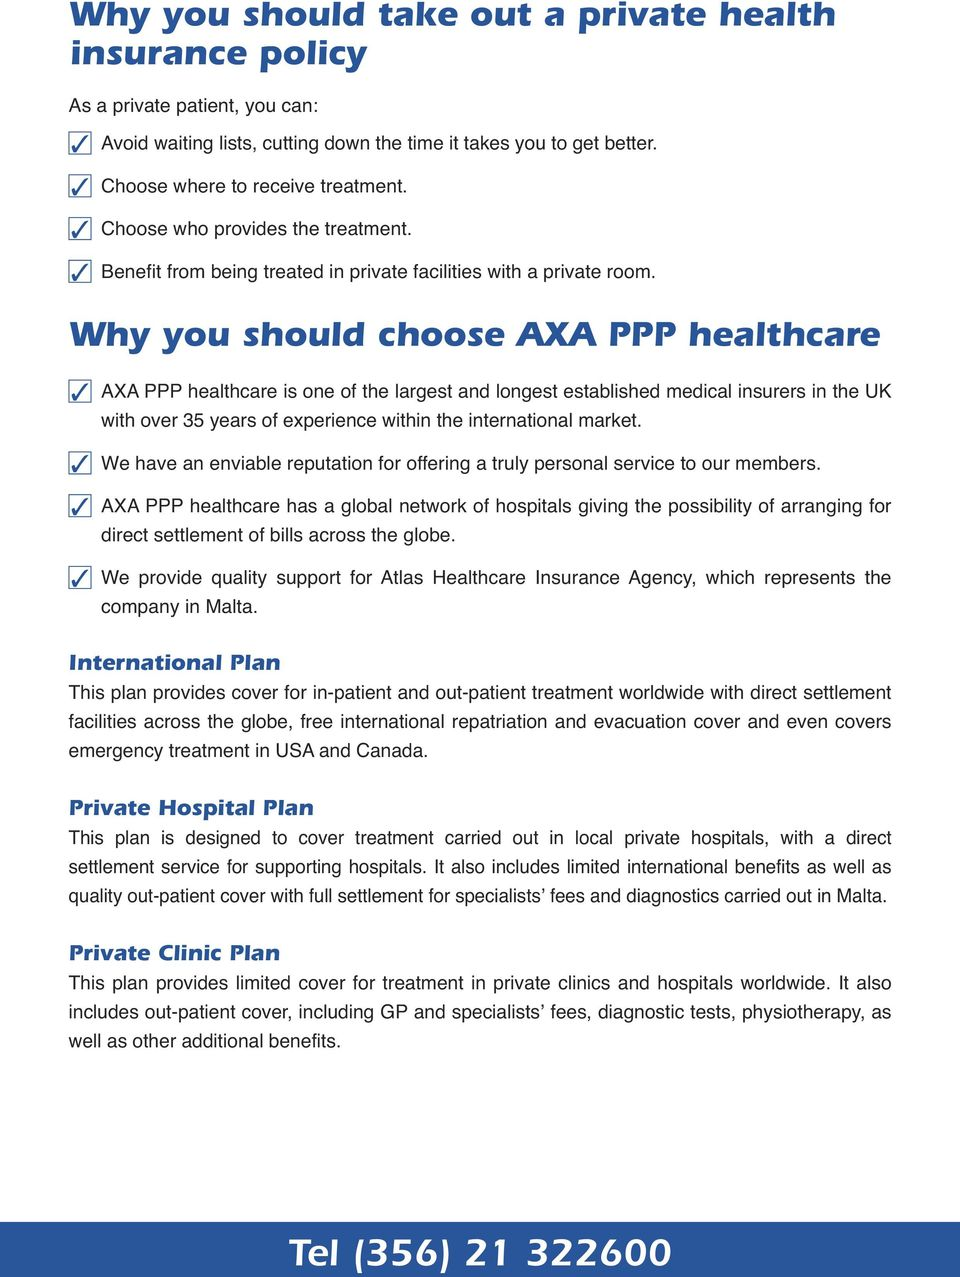 Why you should choose AXA PPP healthcare AXA PPP healthcare is one of the largest and longest established medical insurers in the UK with over 35 years of experience within the international market.